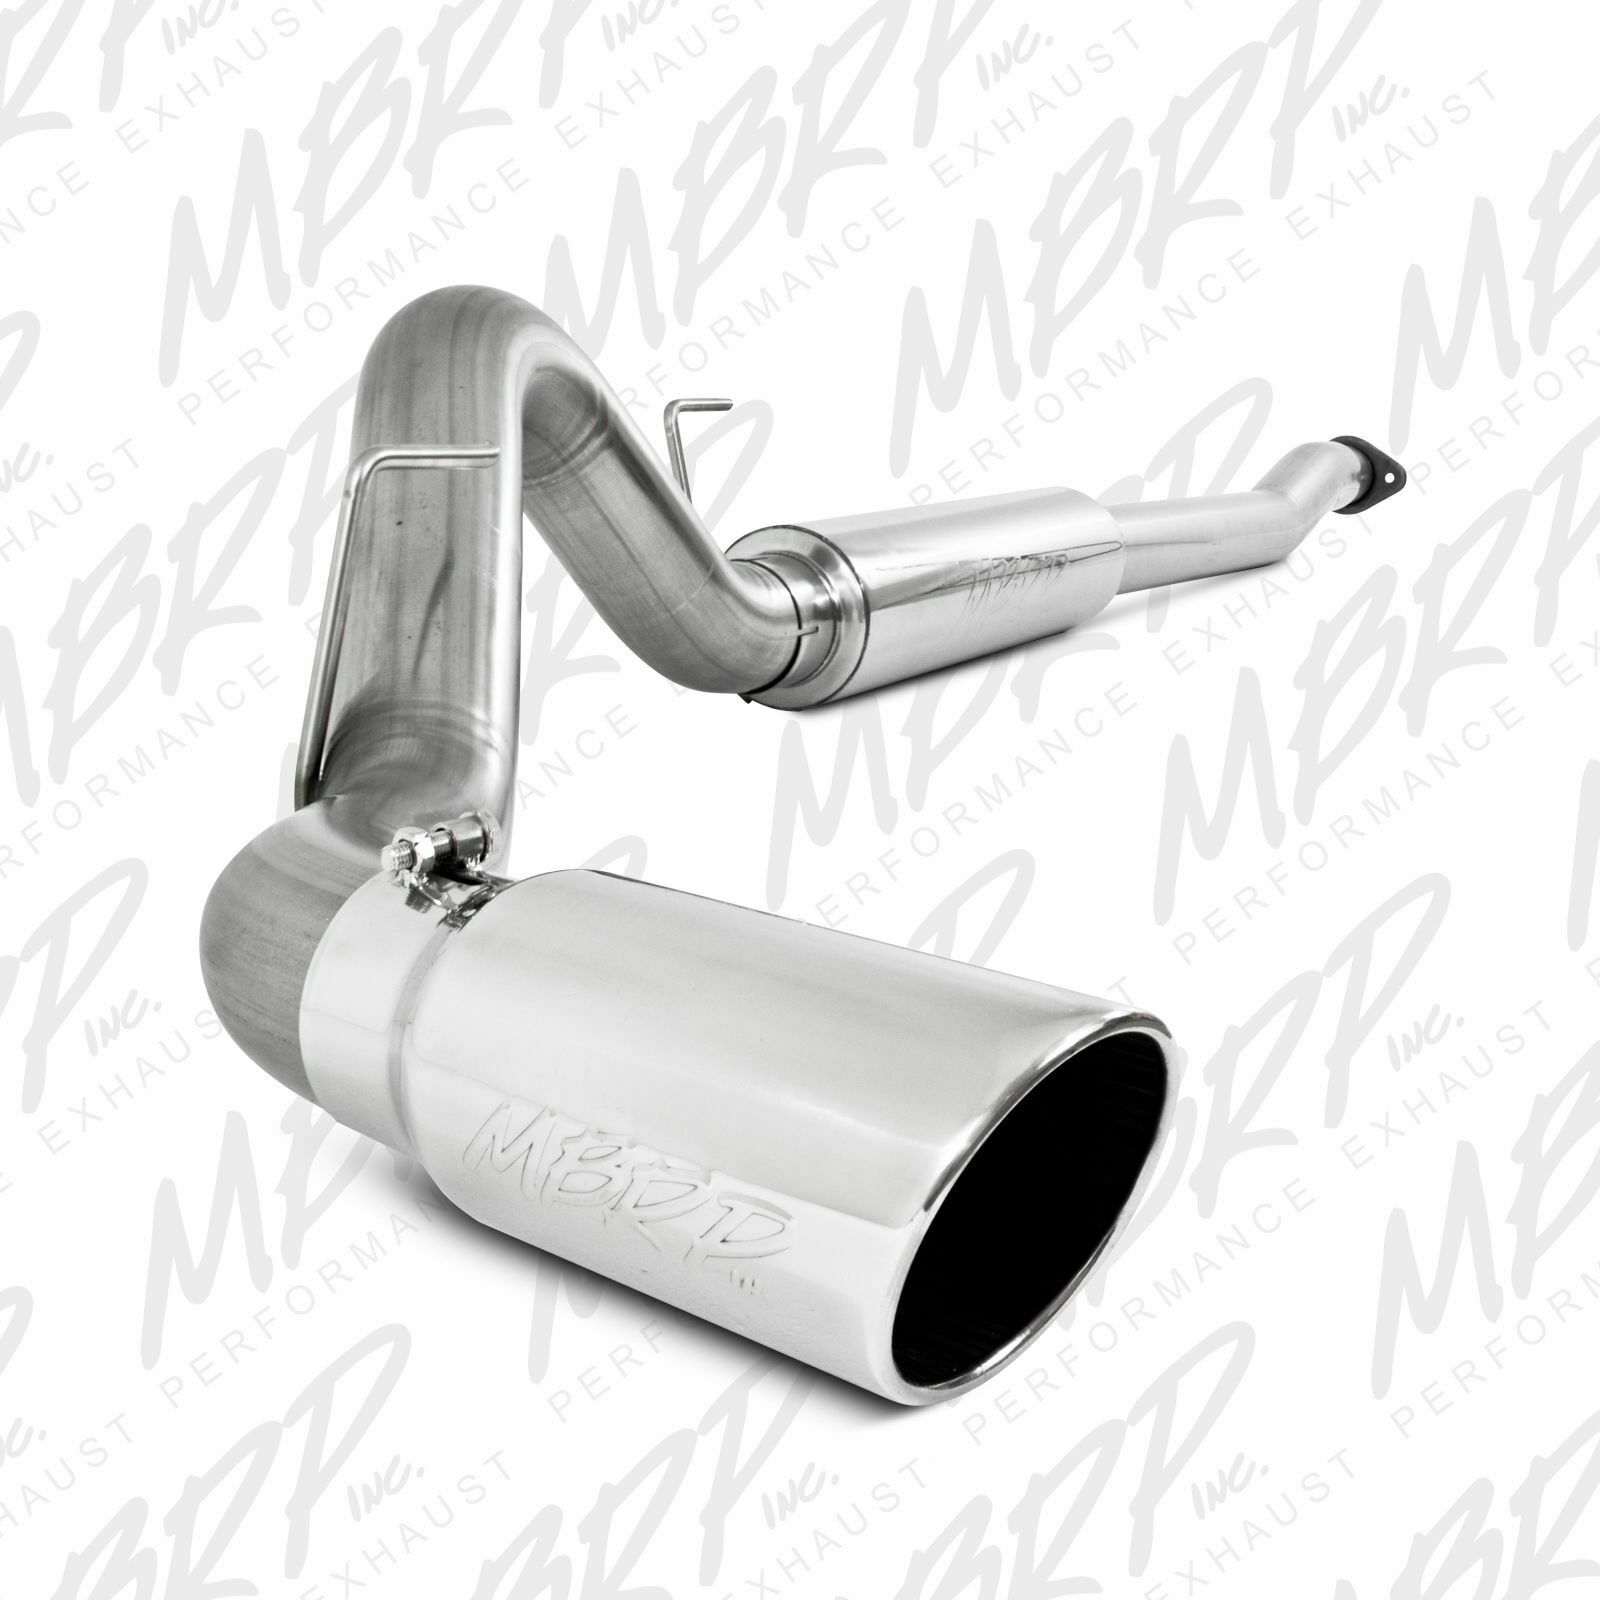 >MBRP 4-inch Cat-Back Exhaust